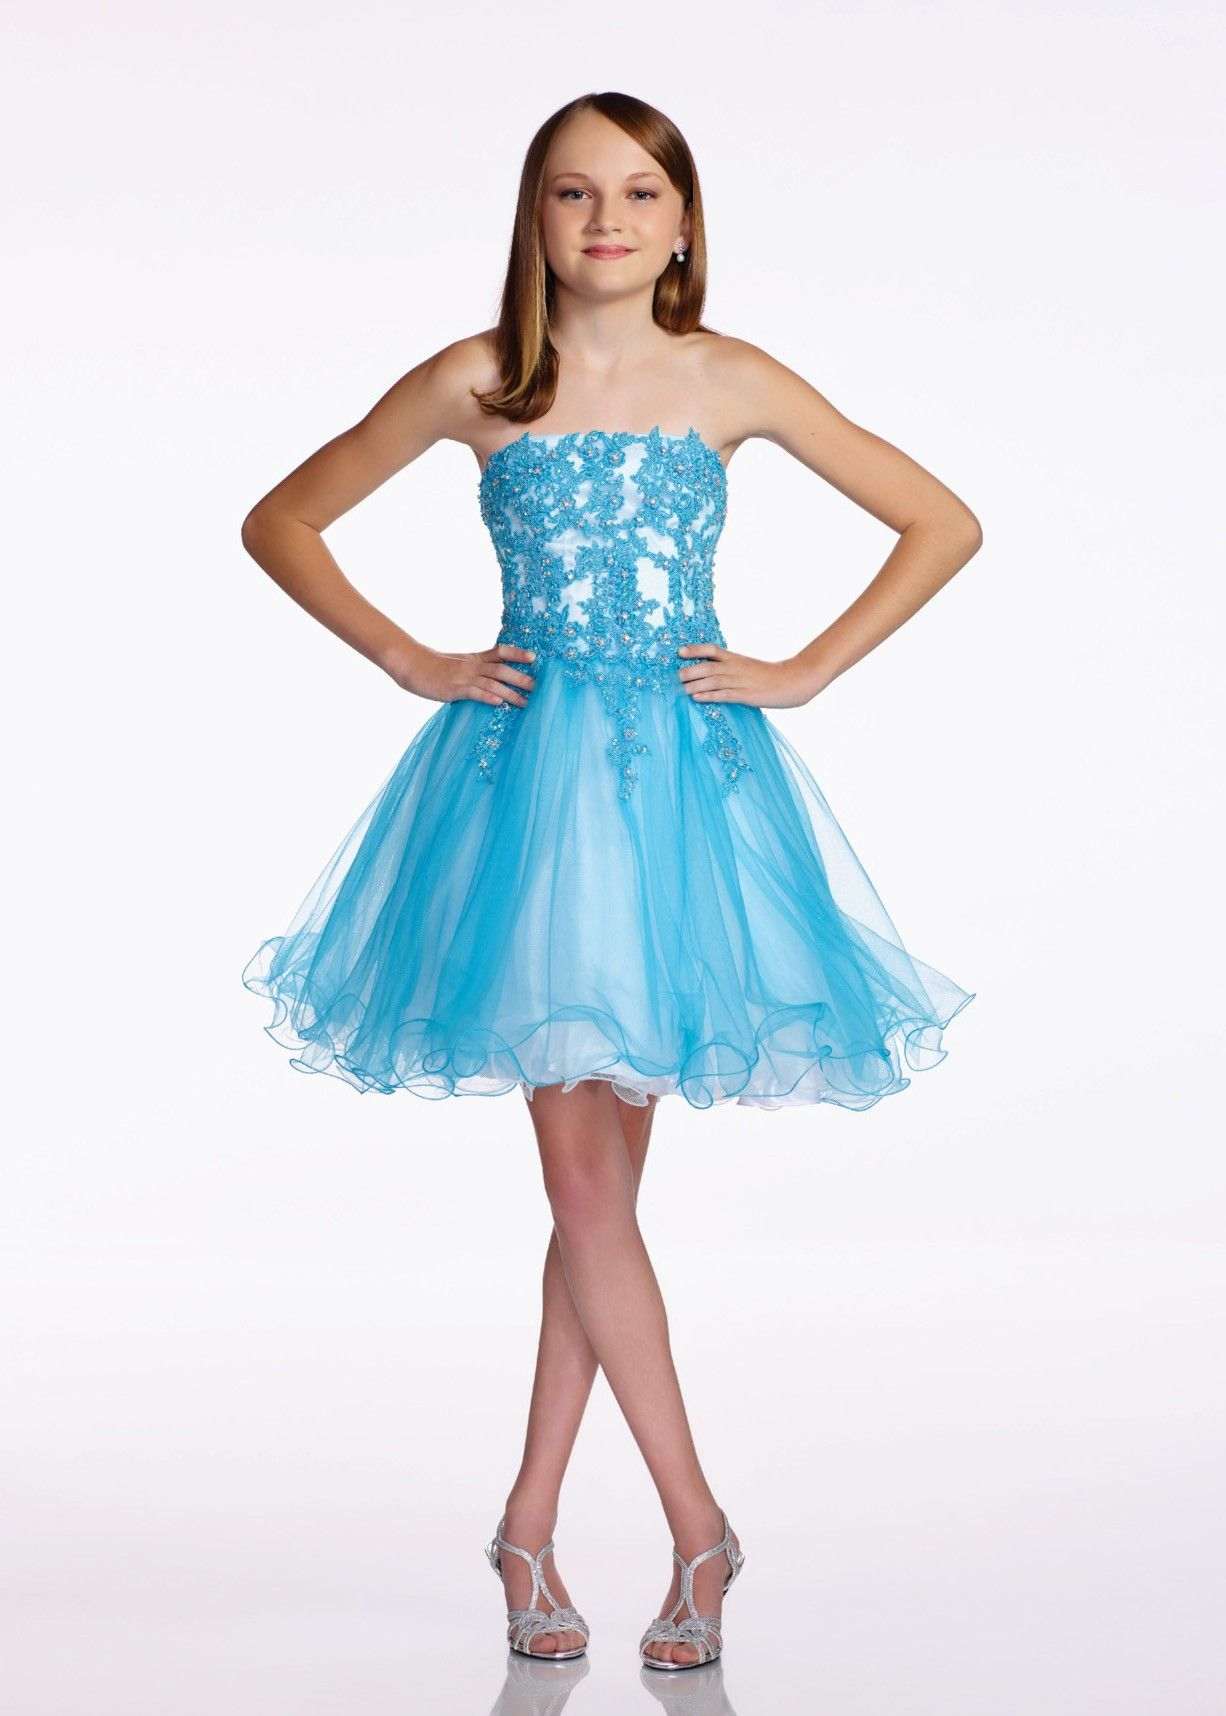 Lexie Junior Misses Mon Cheri Tw11657 Will Make Your Princes The Belle Of The Ball Perfect For A Daddy Daught Mitzvah Dresses Dresses For Tweens Girls Dresses [ 1716 x 1226 Pixel ]